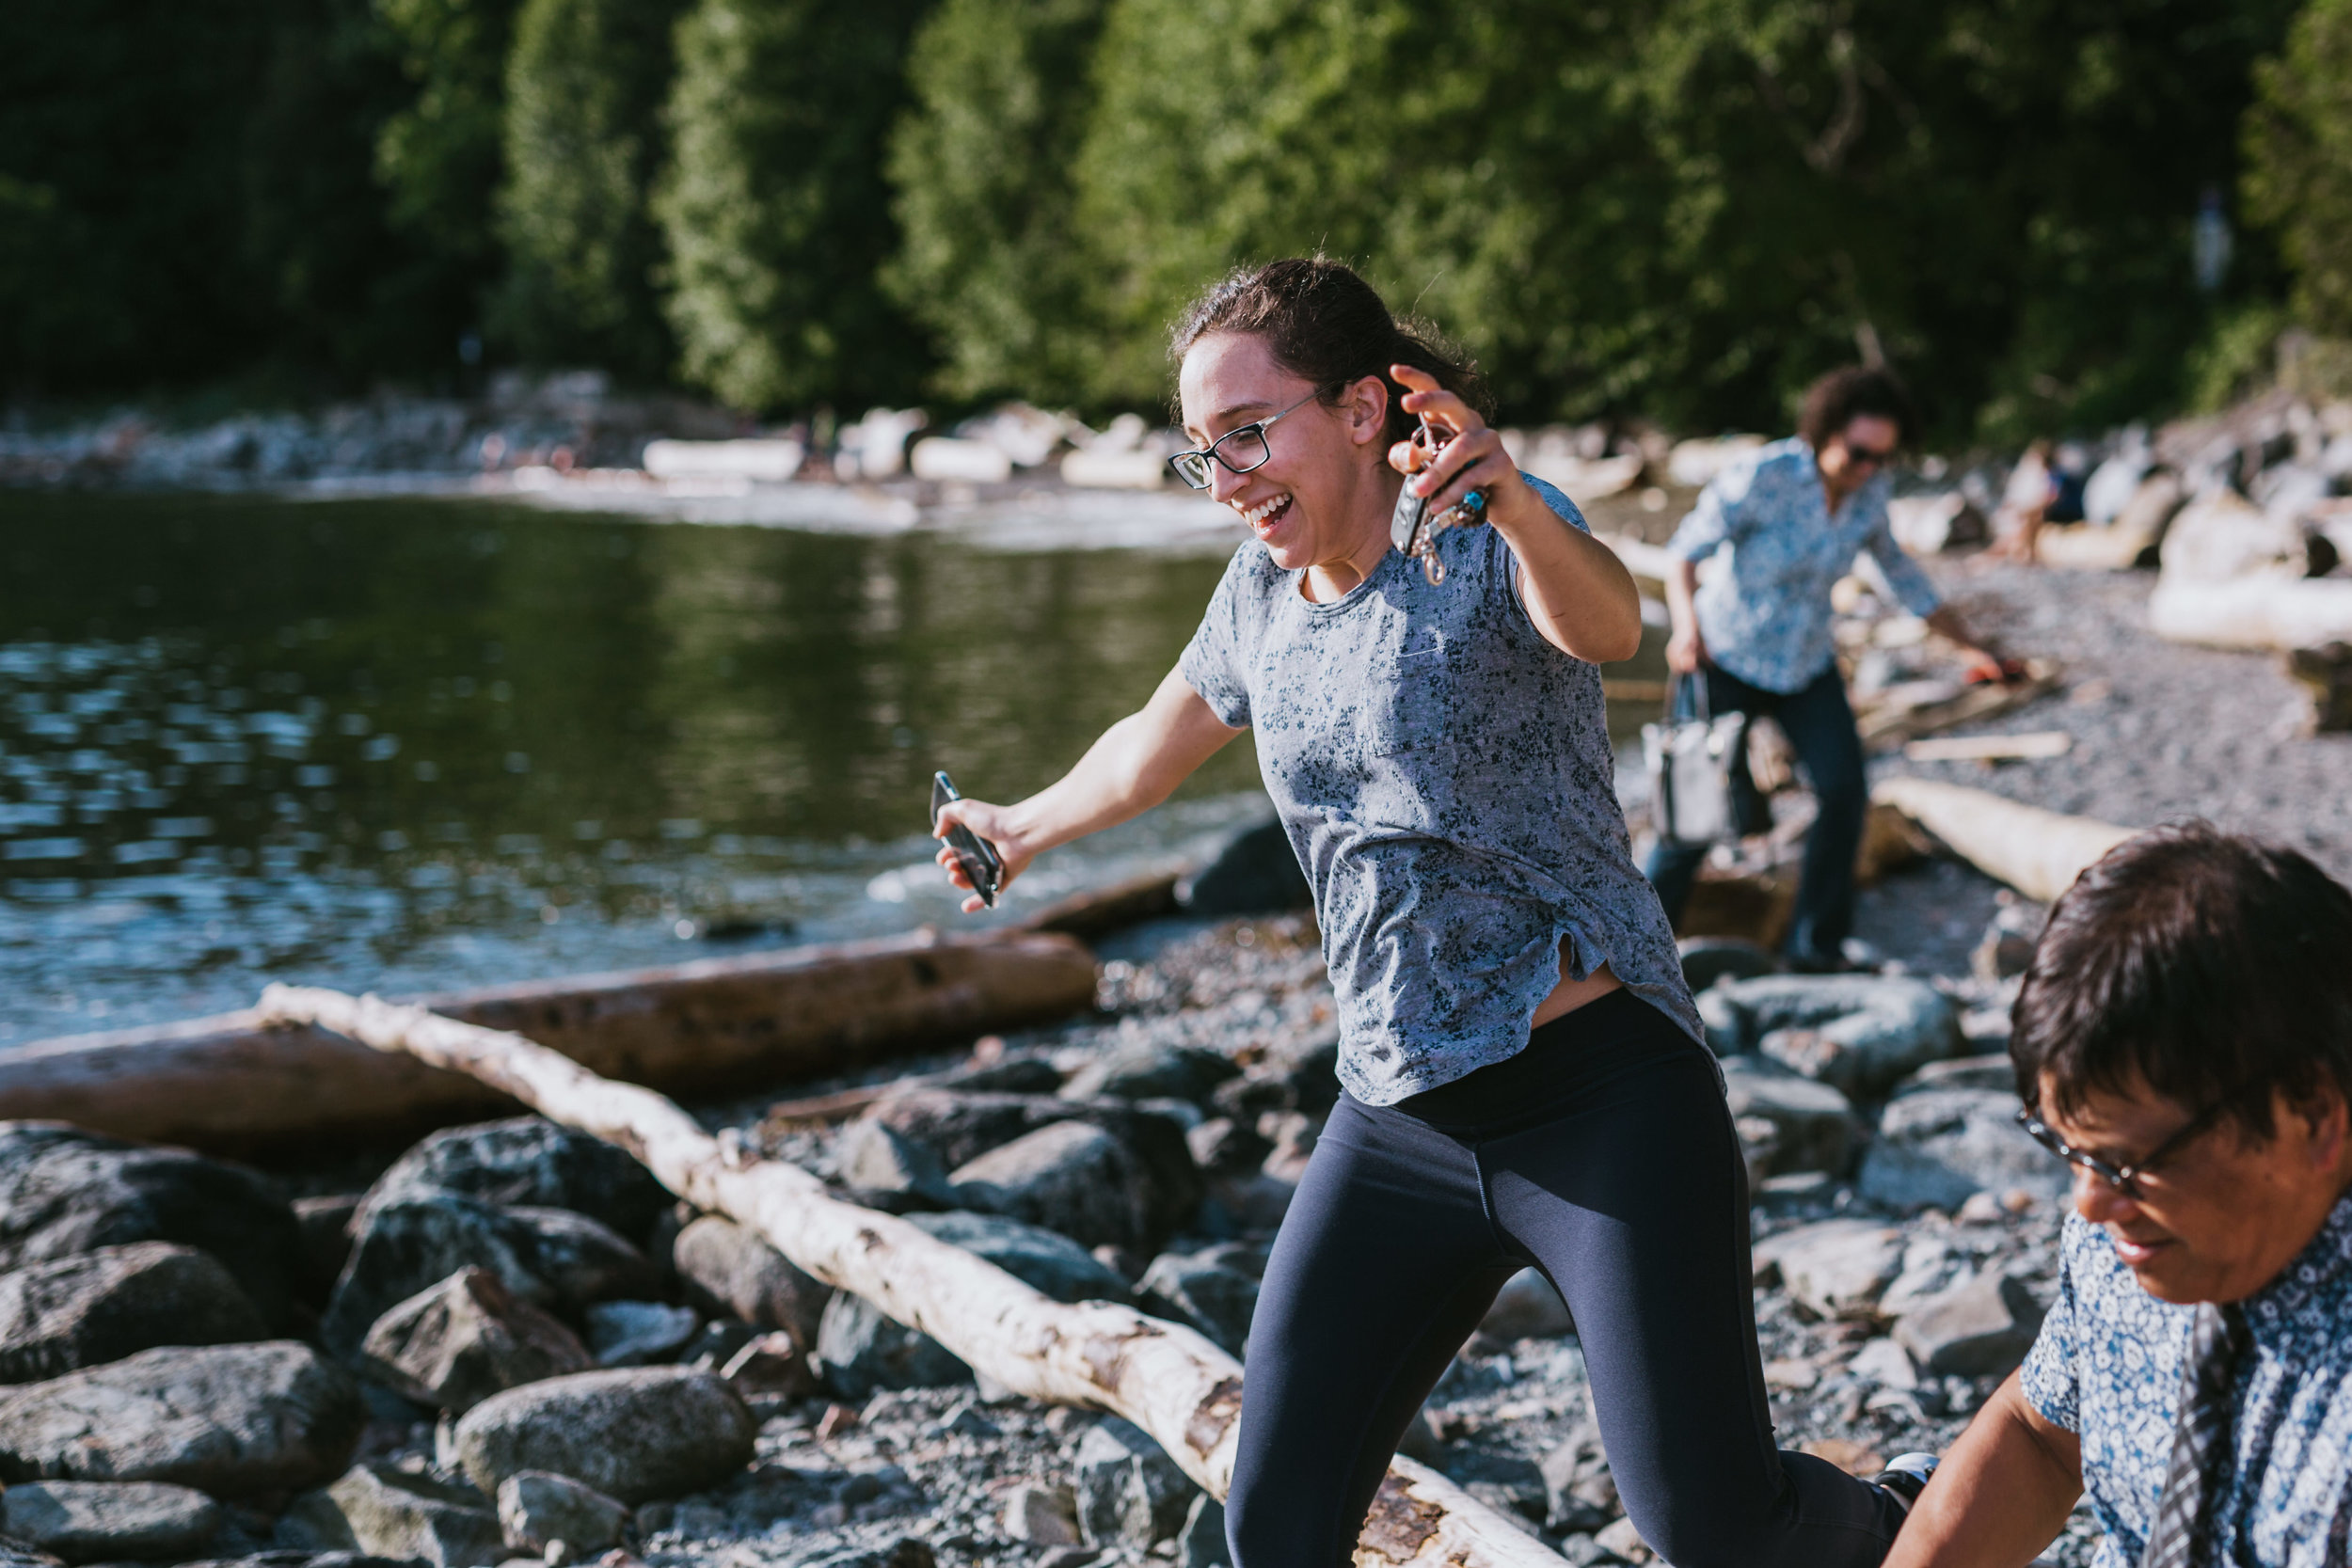 oliver-rabanes-vancouver-surrey-whytecliff-park-proposal-engagement-photography-25.JPG